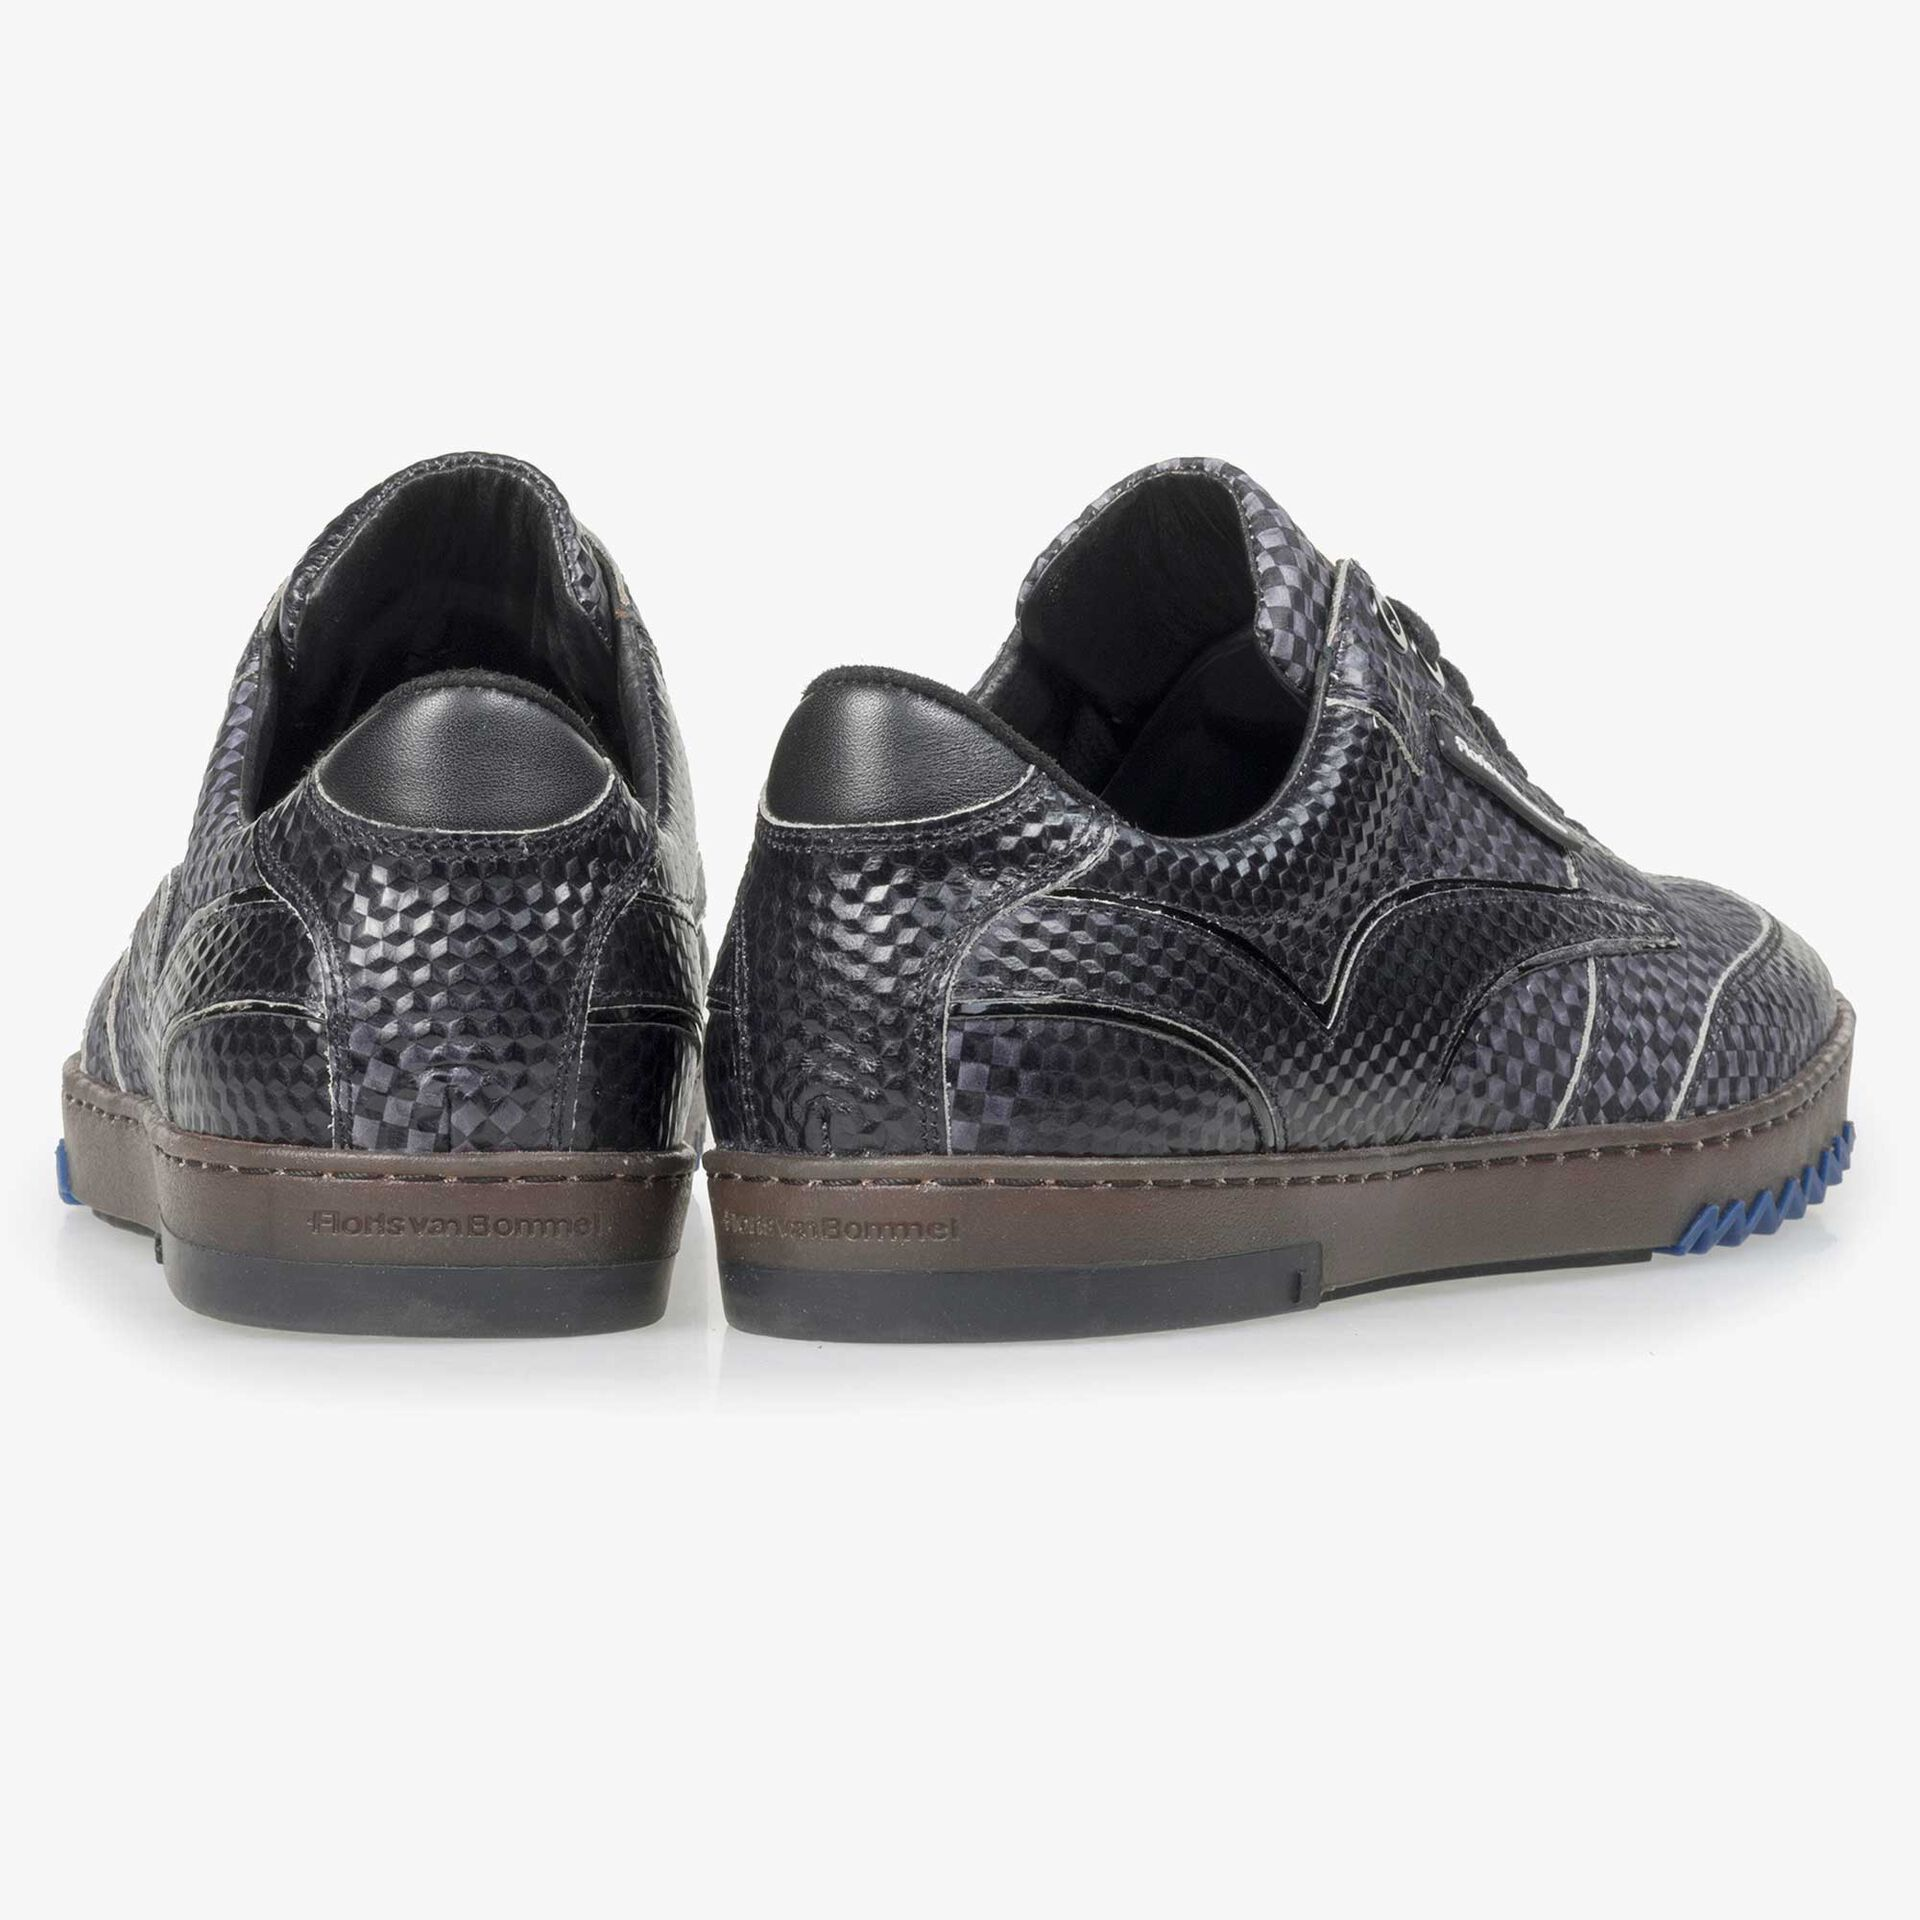 Floris van Bommel men's grey sneaker finished with a black print